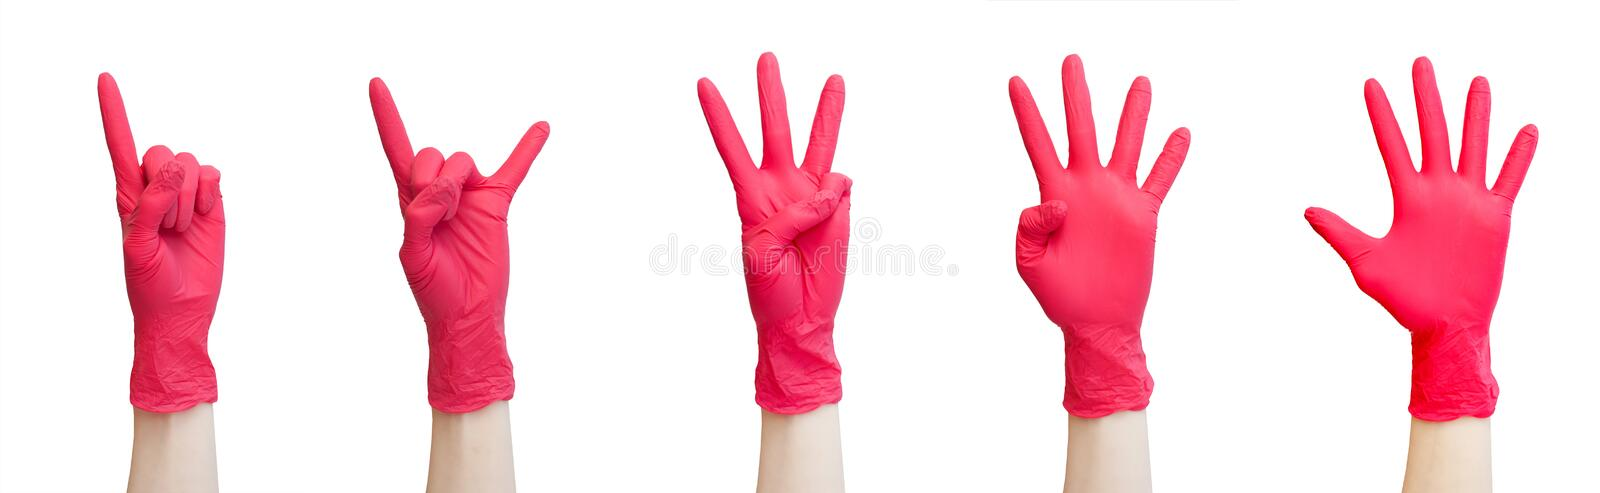 Healthy, vitamins, vaccination, medical store, pharmacy, recovery, proper nutrition concept - Signs made of red medical gloves. Fi royalty free stock photos